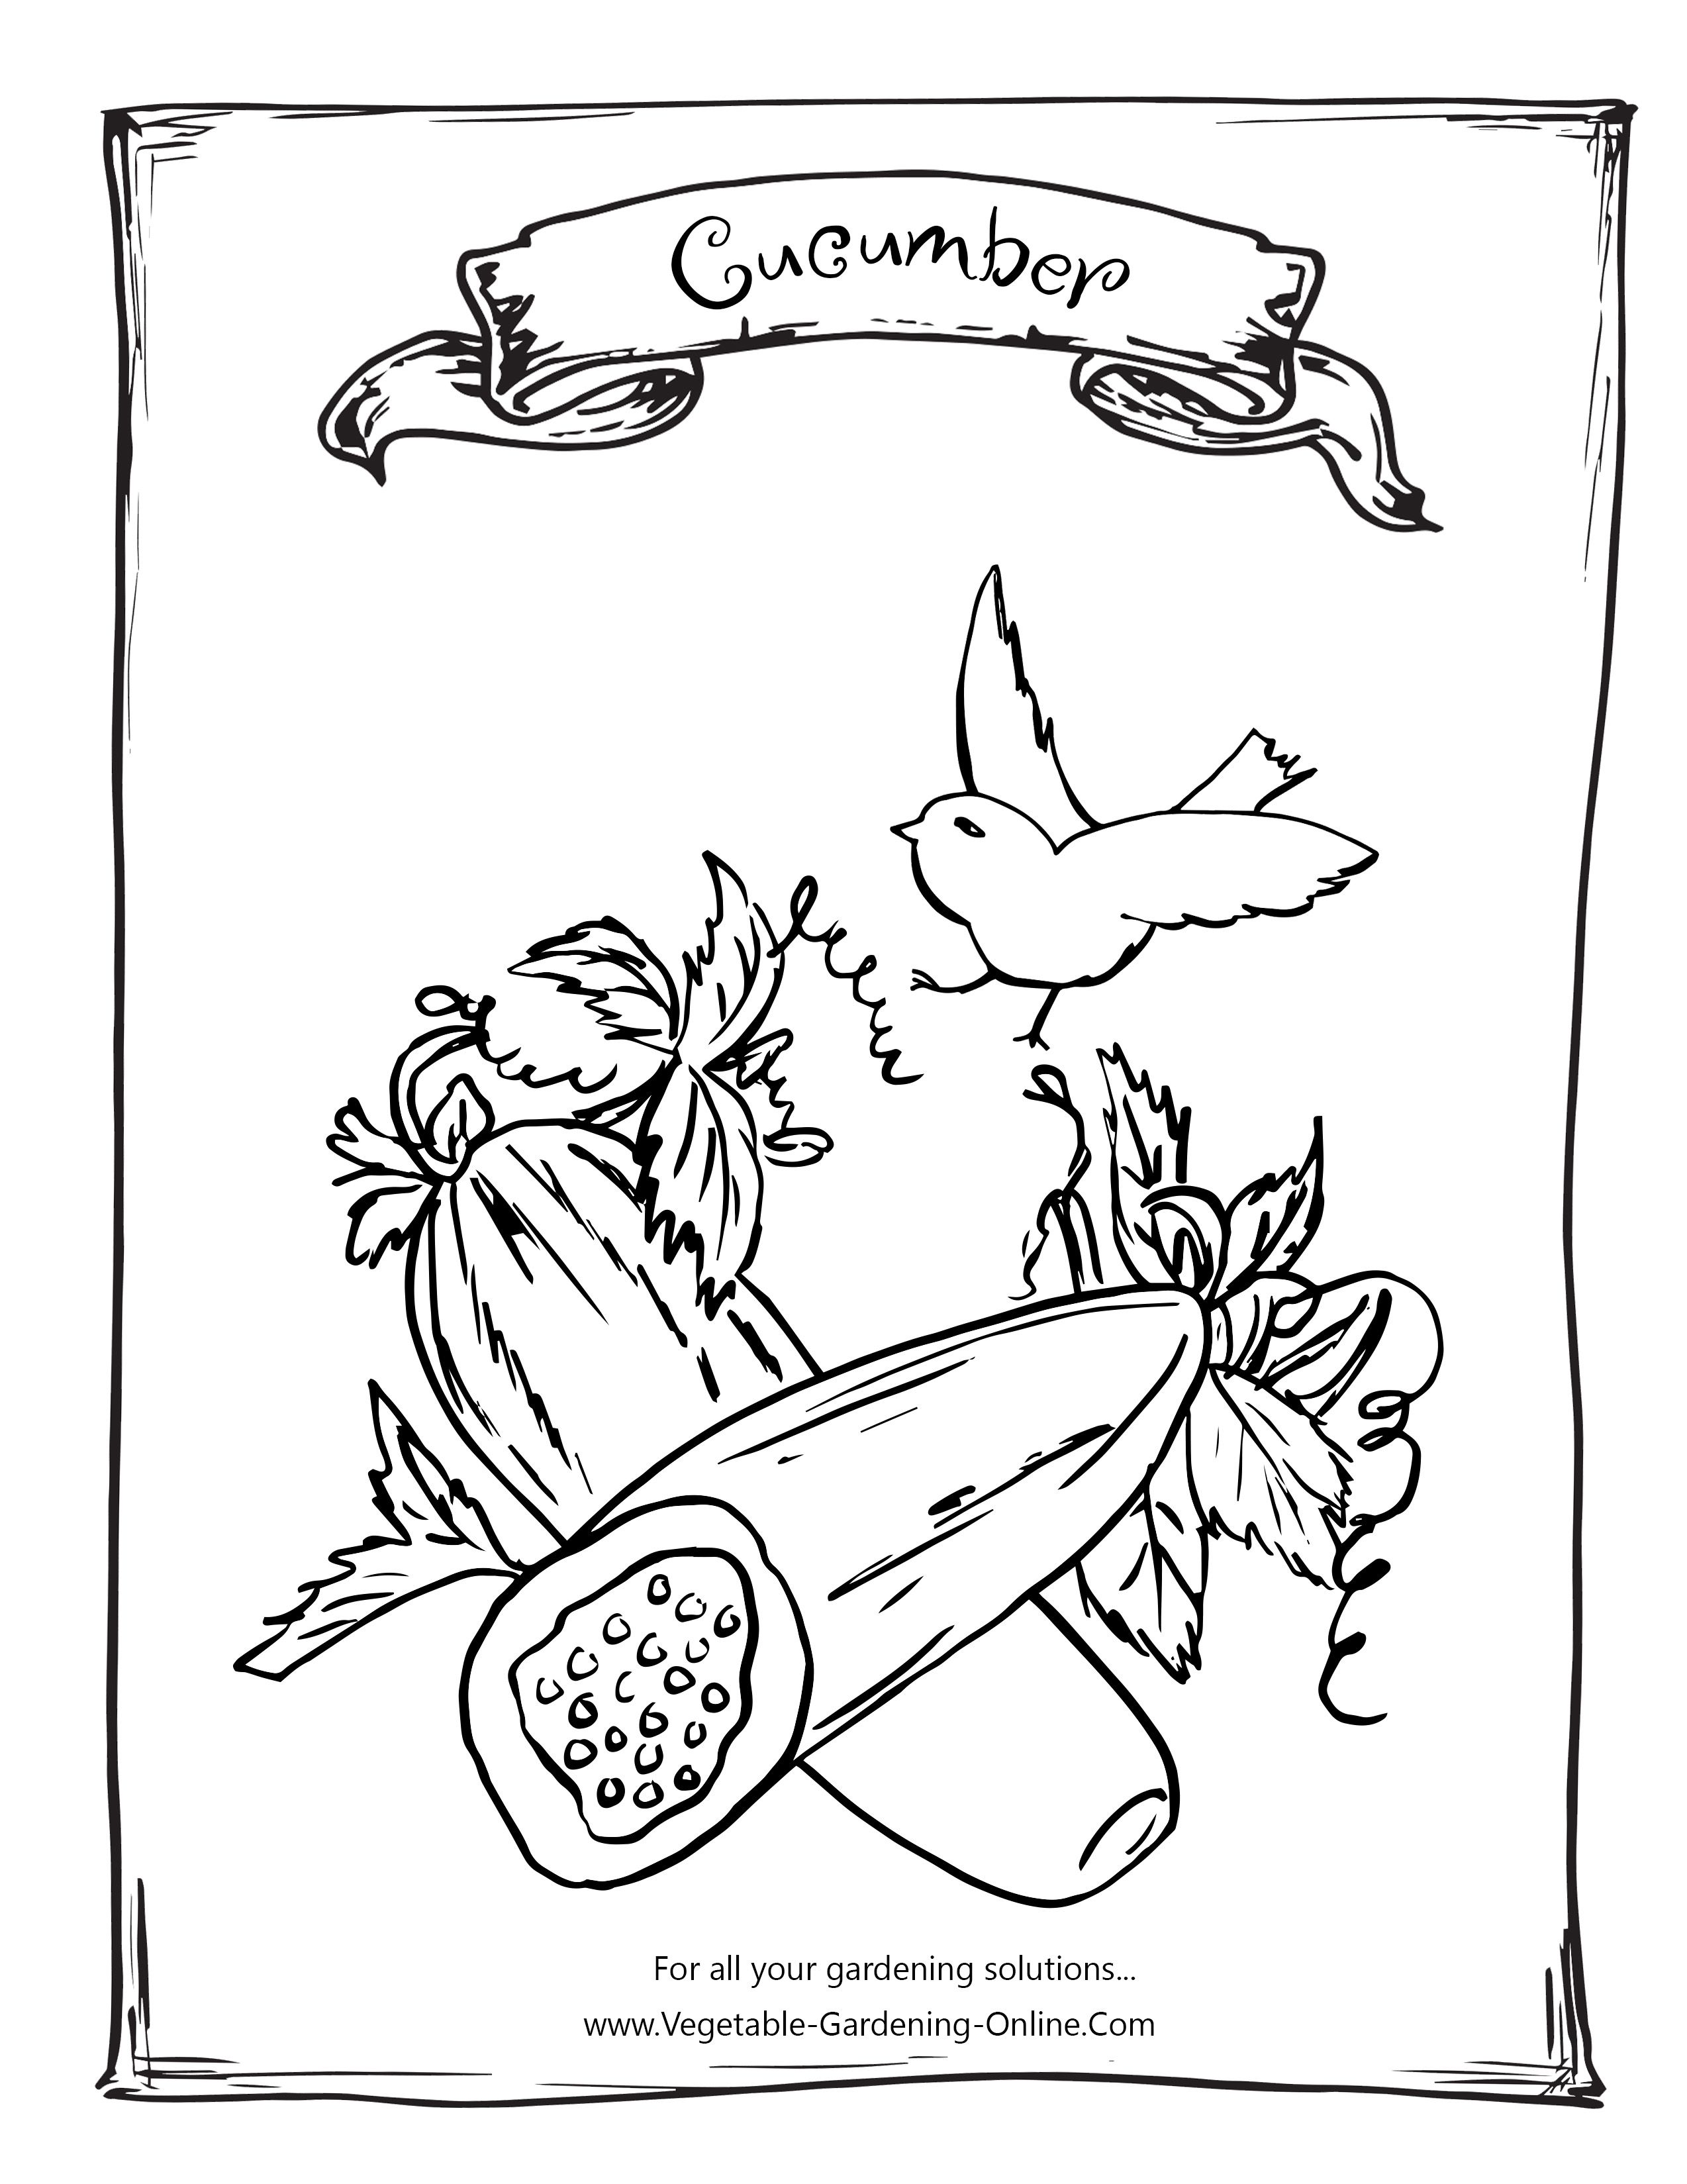 Printable Garden Vegetable Coloring Page For Kids